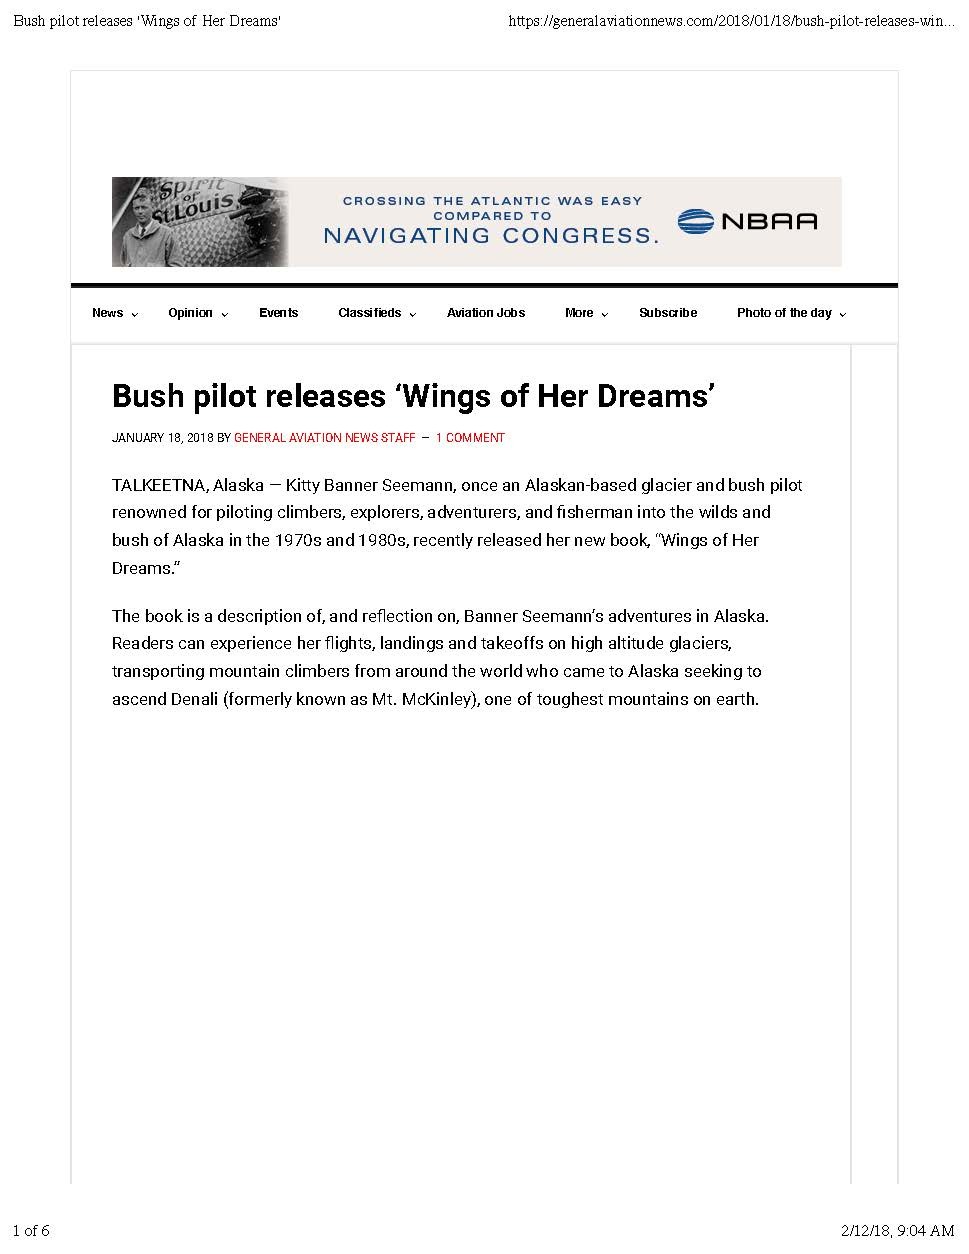 General Aviation News Bush pilot releases 'Wings of Her Dreams' 1.18.18_Page_1.jpg